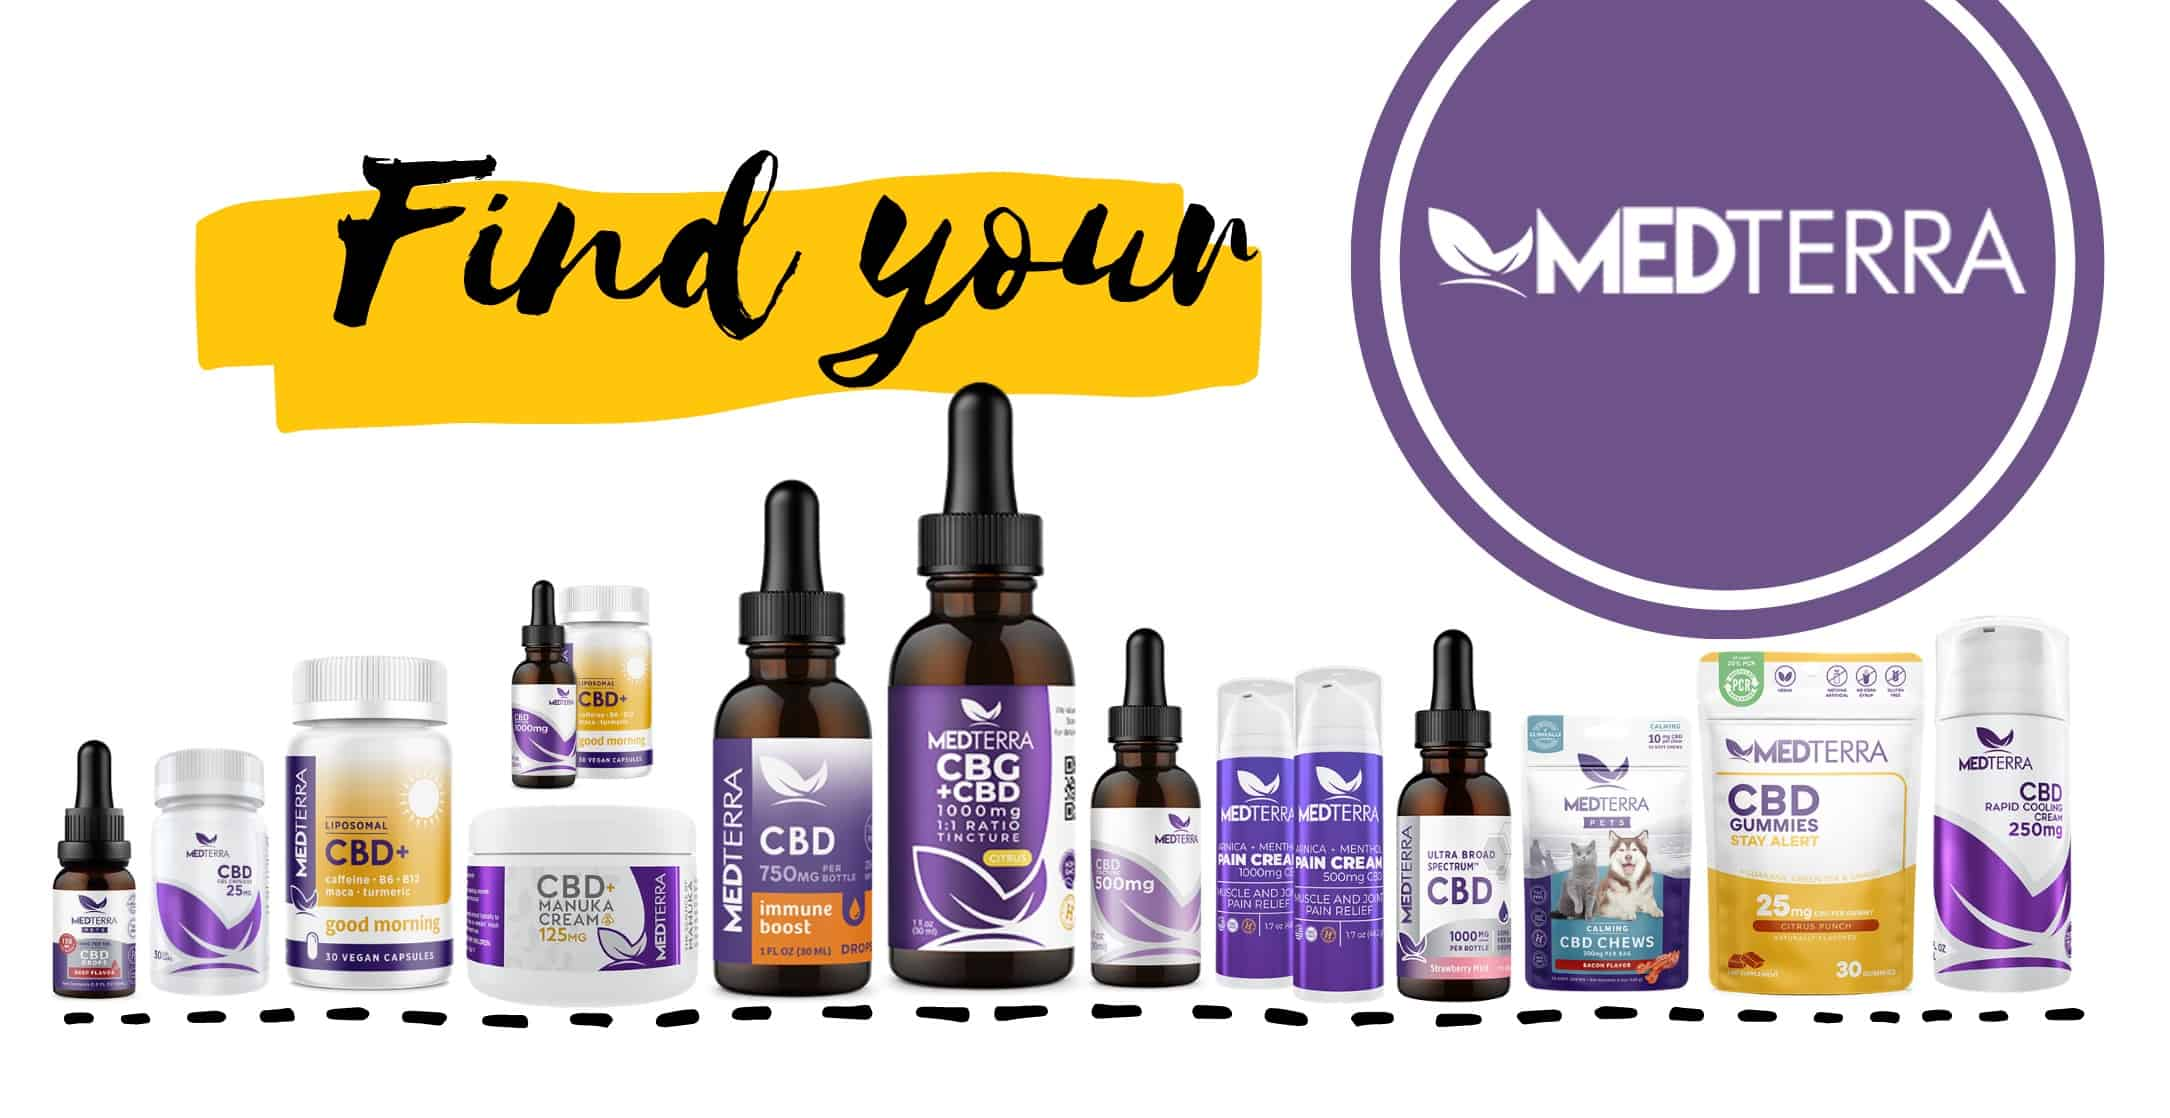 Find your Medterra CBD product